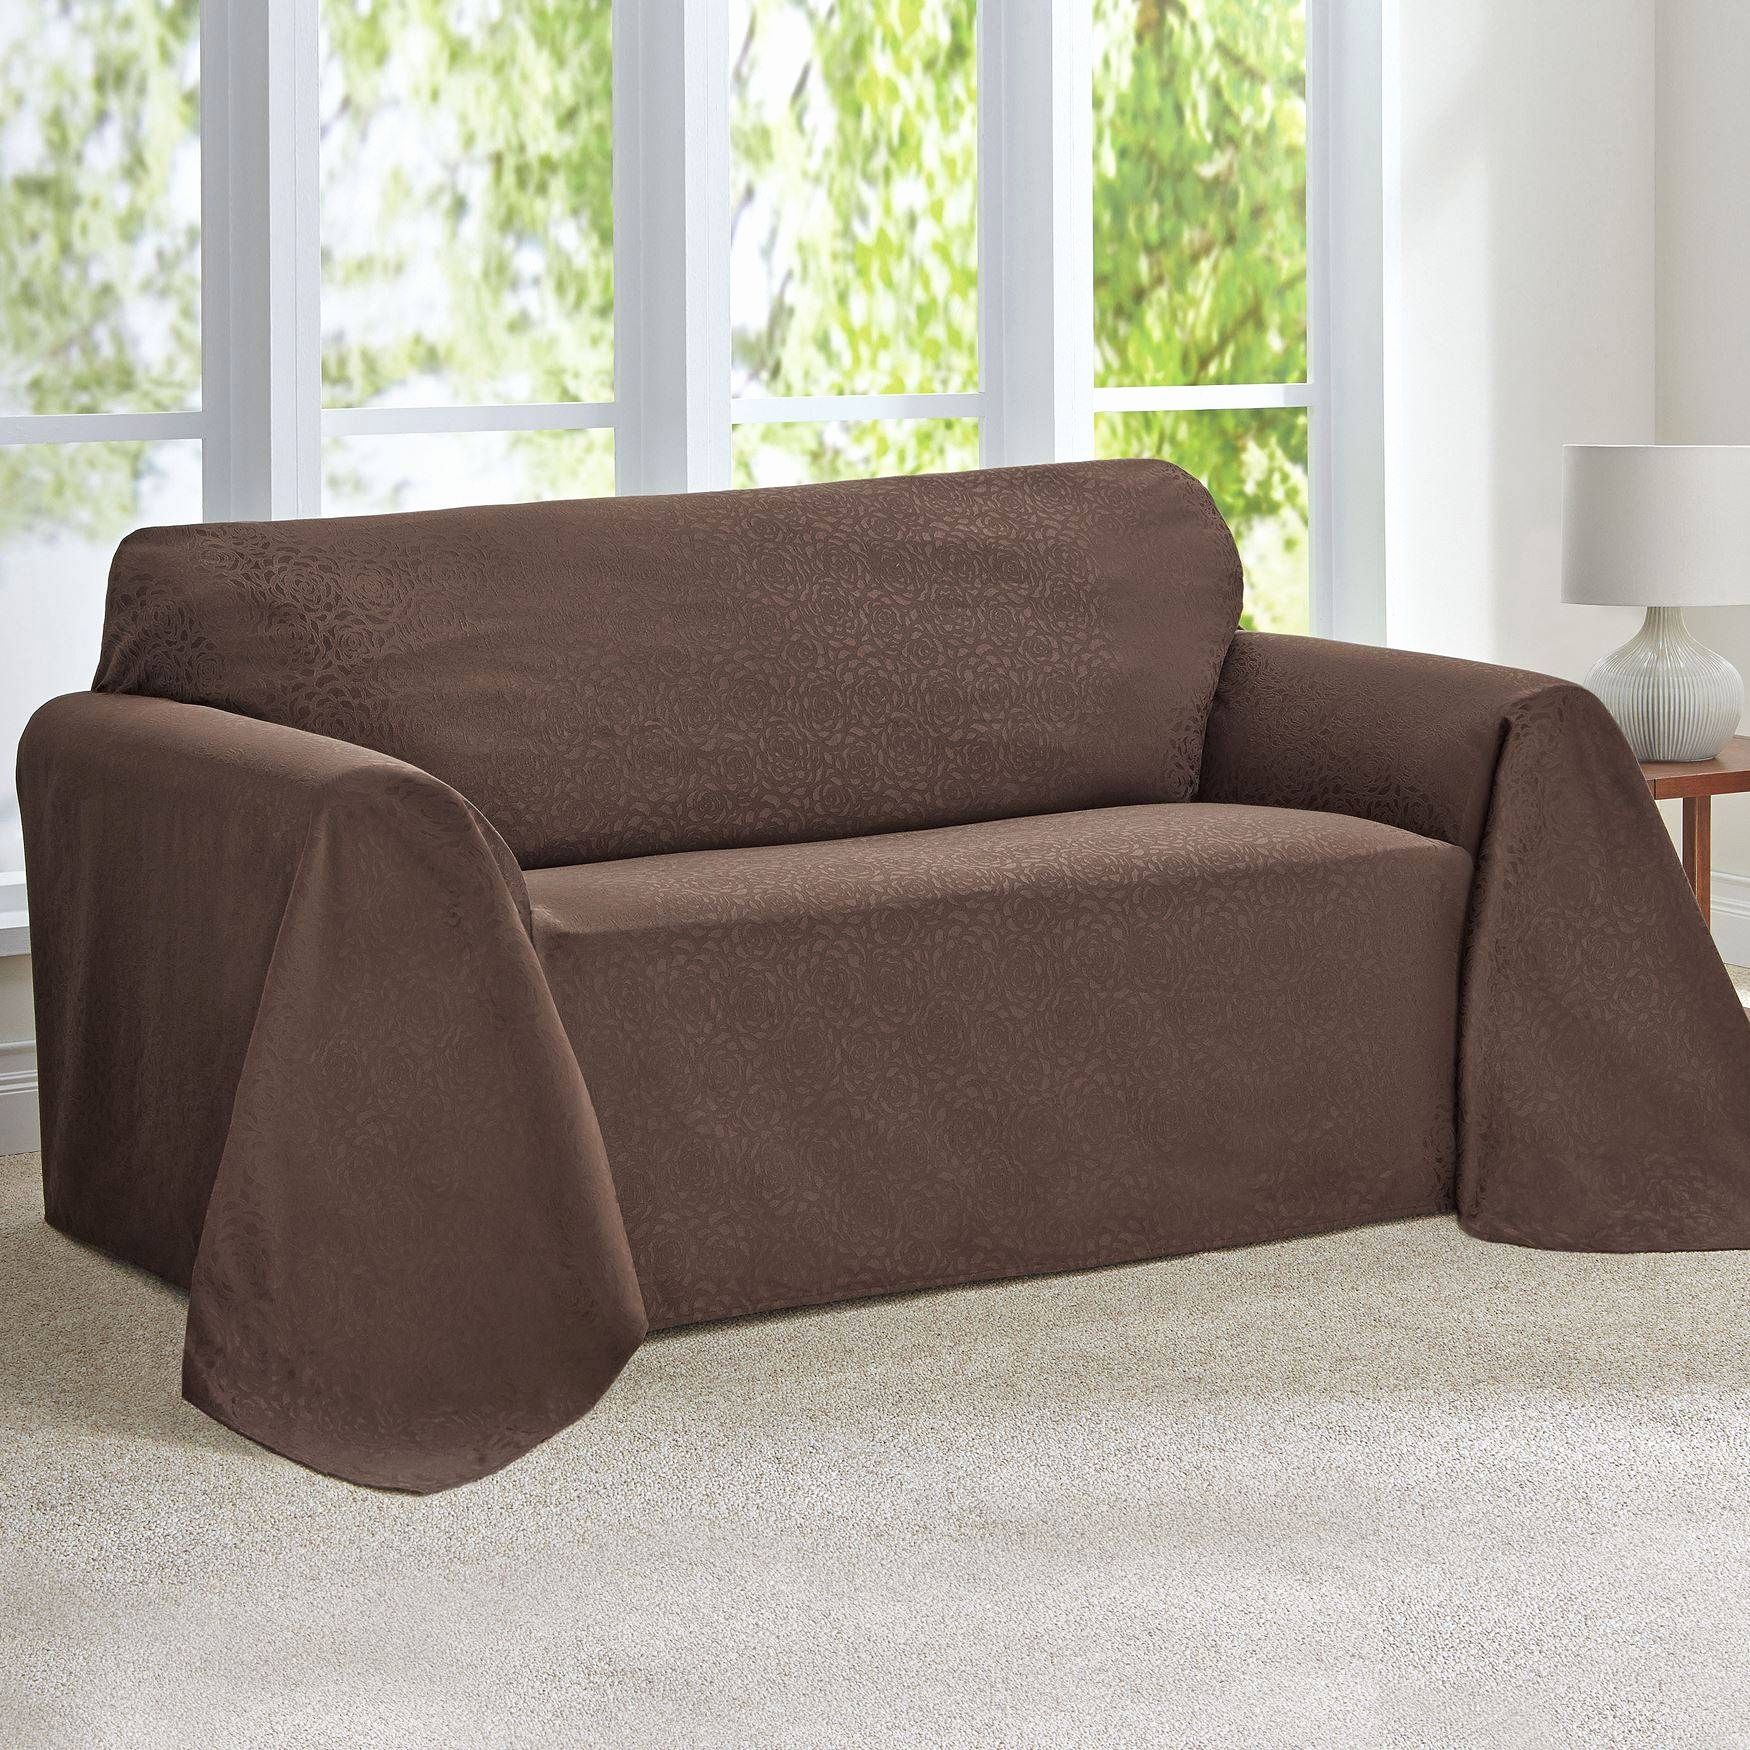 Inspirational sofa and Chair Covers Pics Sofa and Chair ...